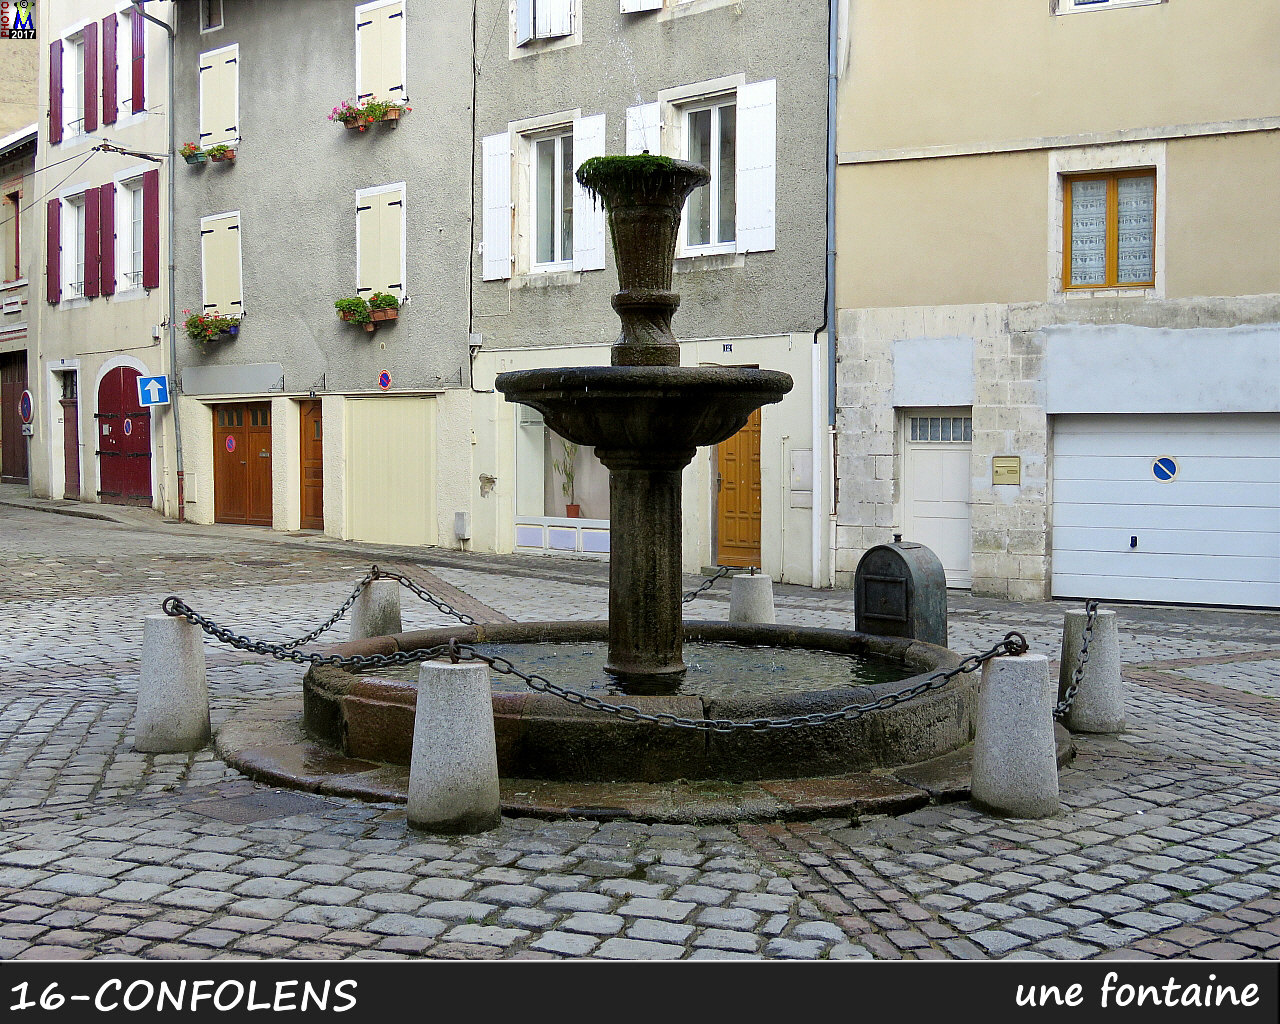 16CONFOLENS_fontaine_1000.jpg